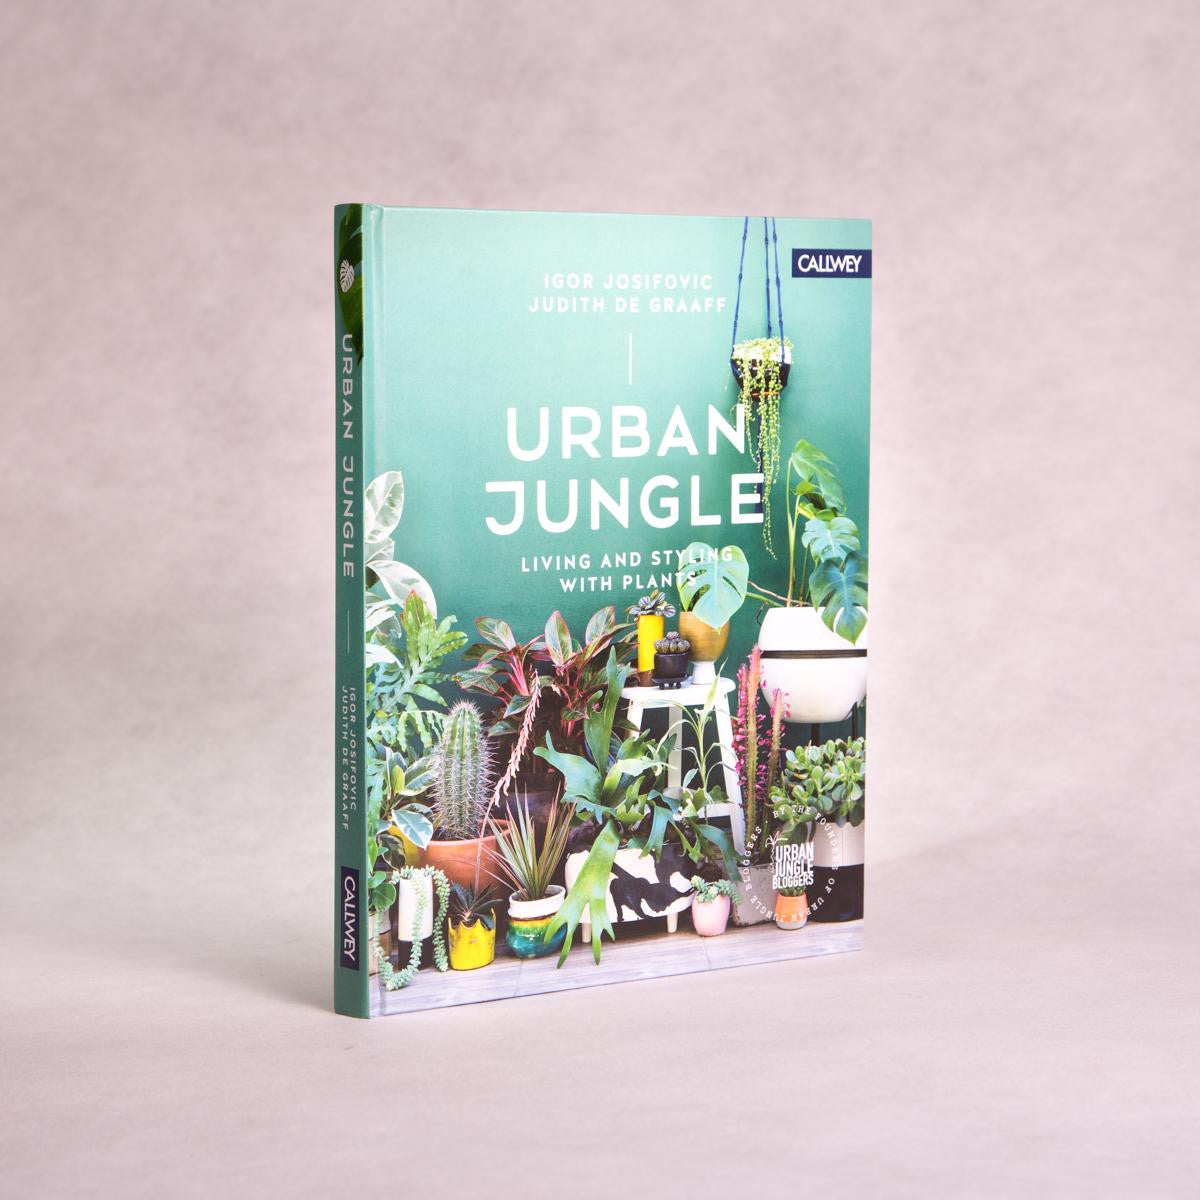 Urban Jungle: Living and Styling with Plants | By Igor Josifovic & Judith De Graaff - Throw Some Seeds